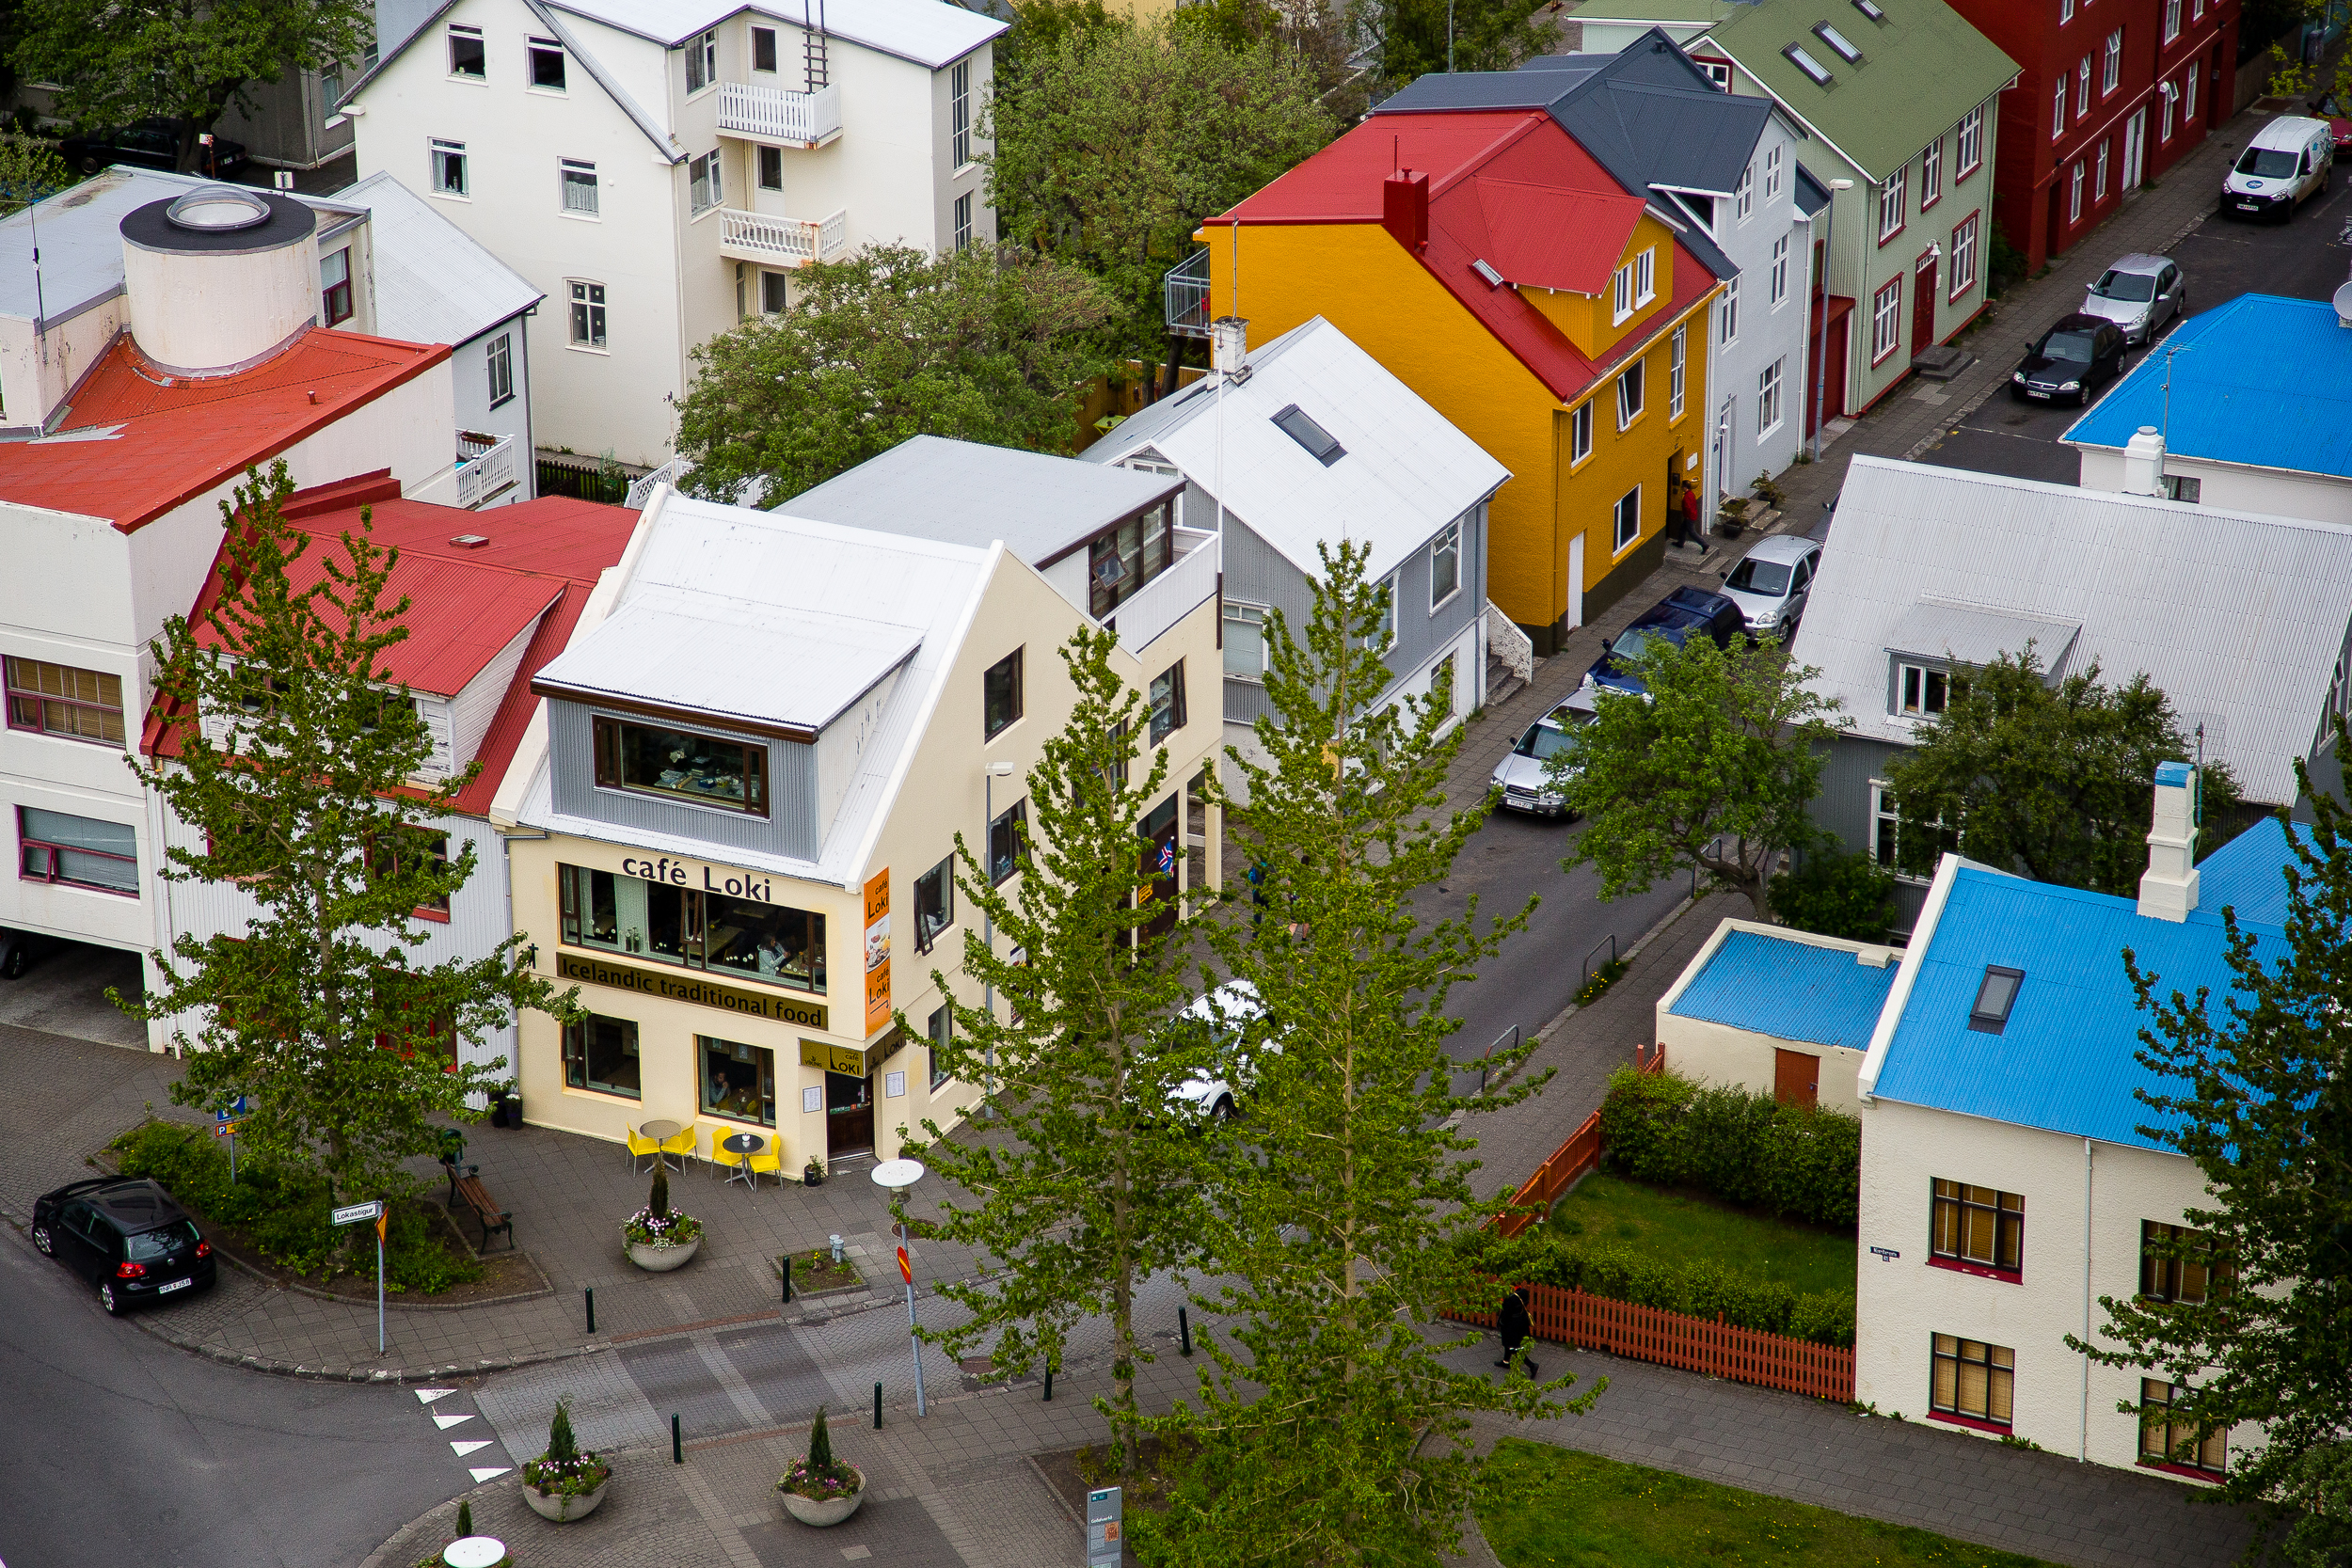 Is it just me, or does Reykjavik from above kind of look like a miniature model town?